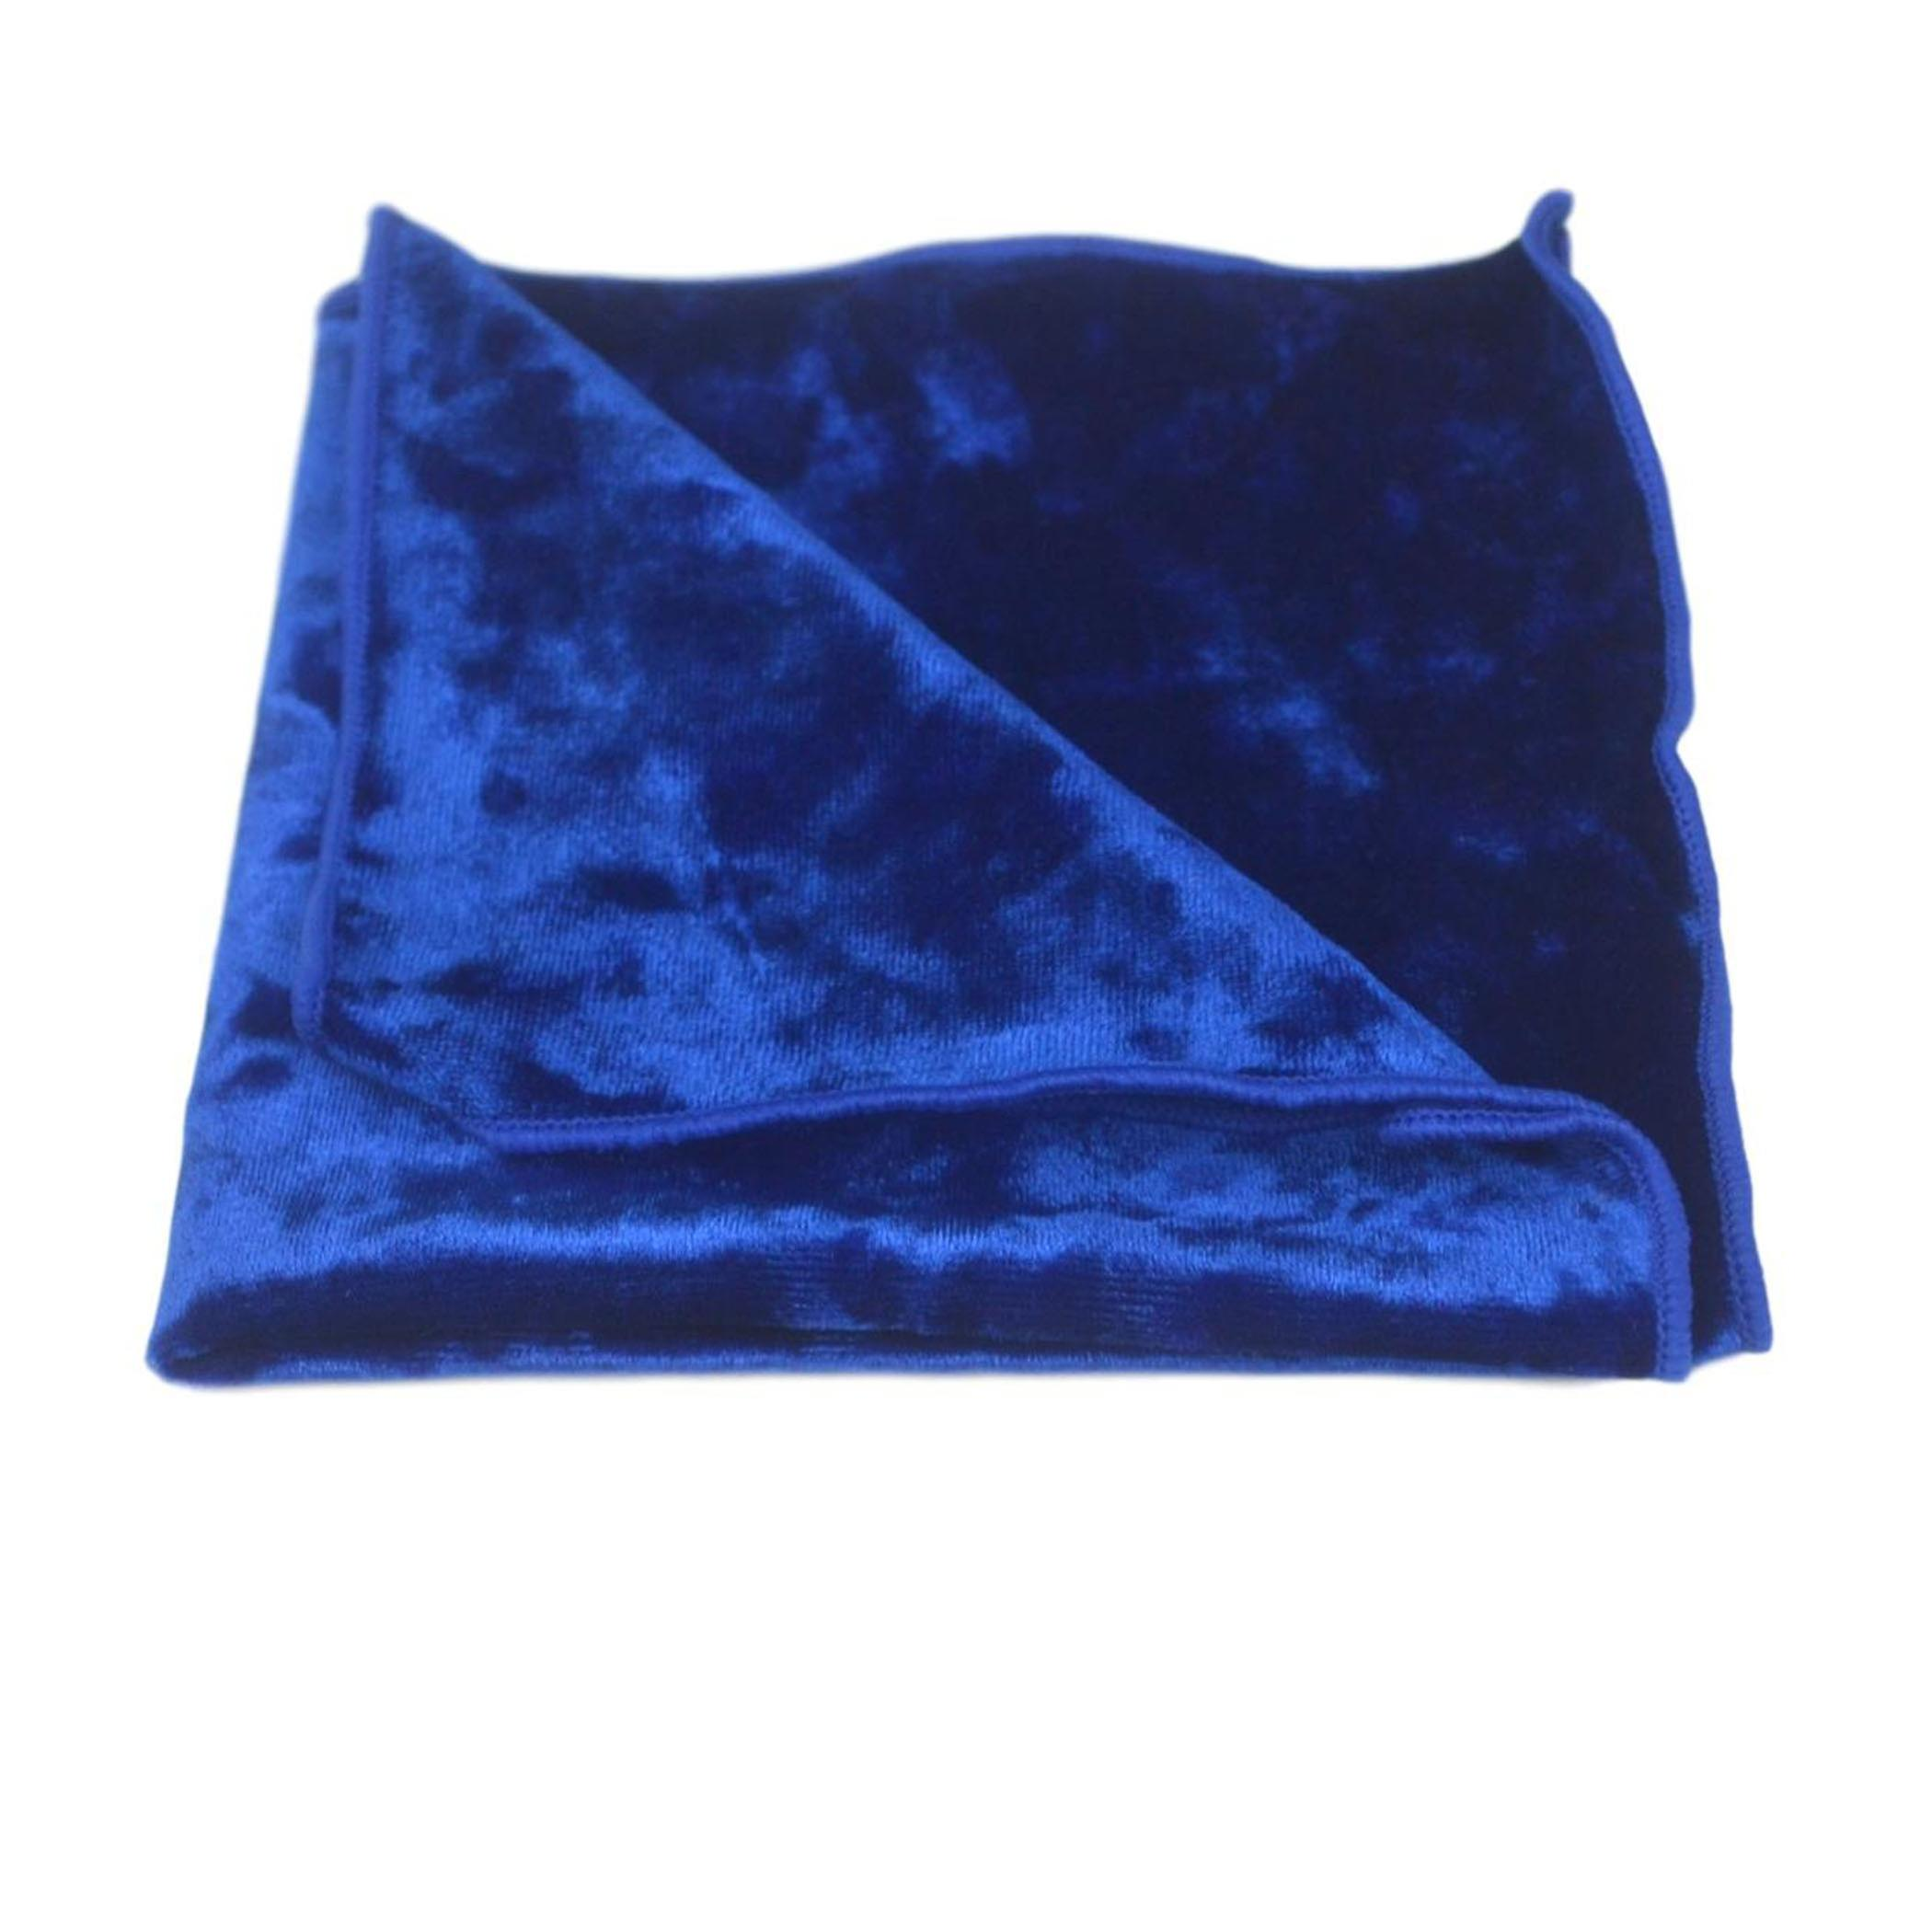 Luxury Blue Crushed Velvet Pocket Square, Handkerchief